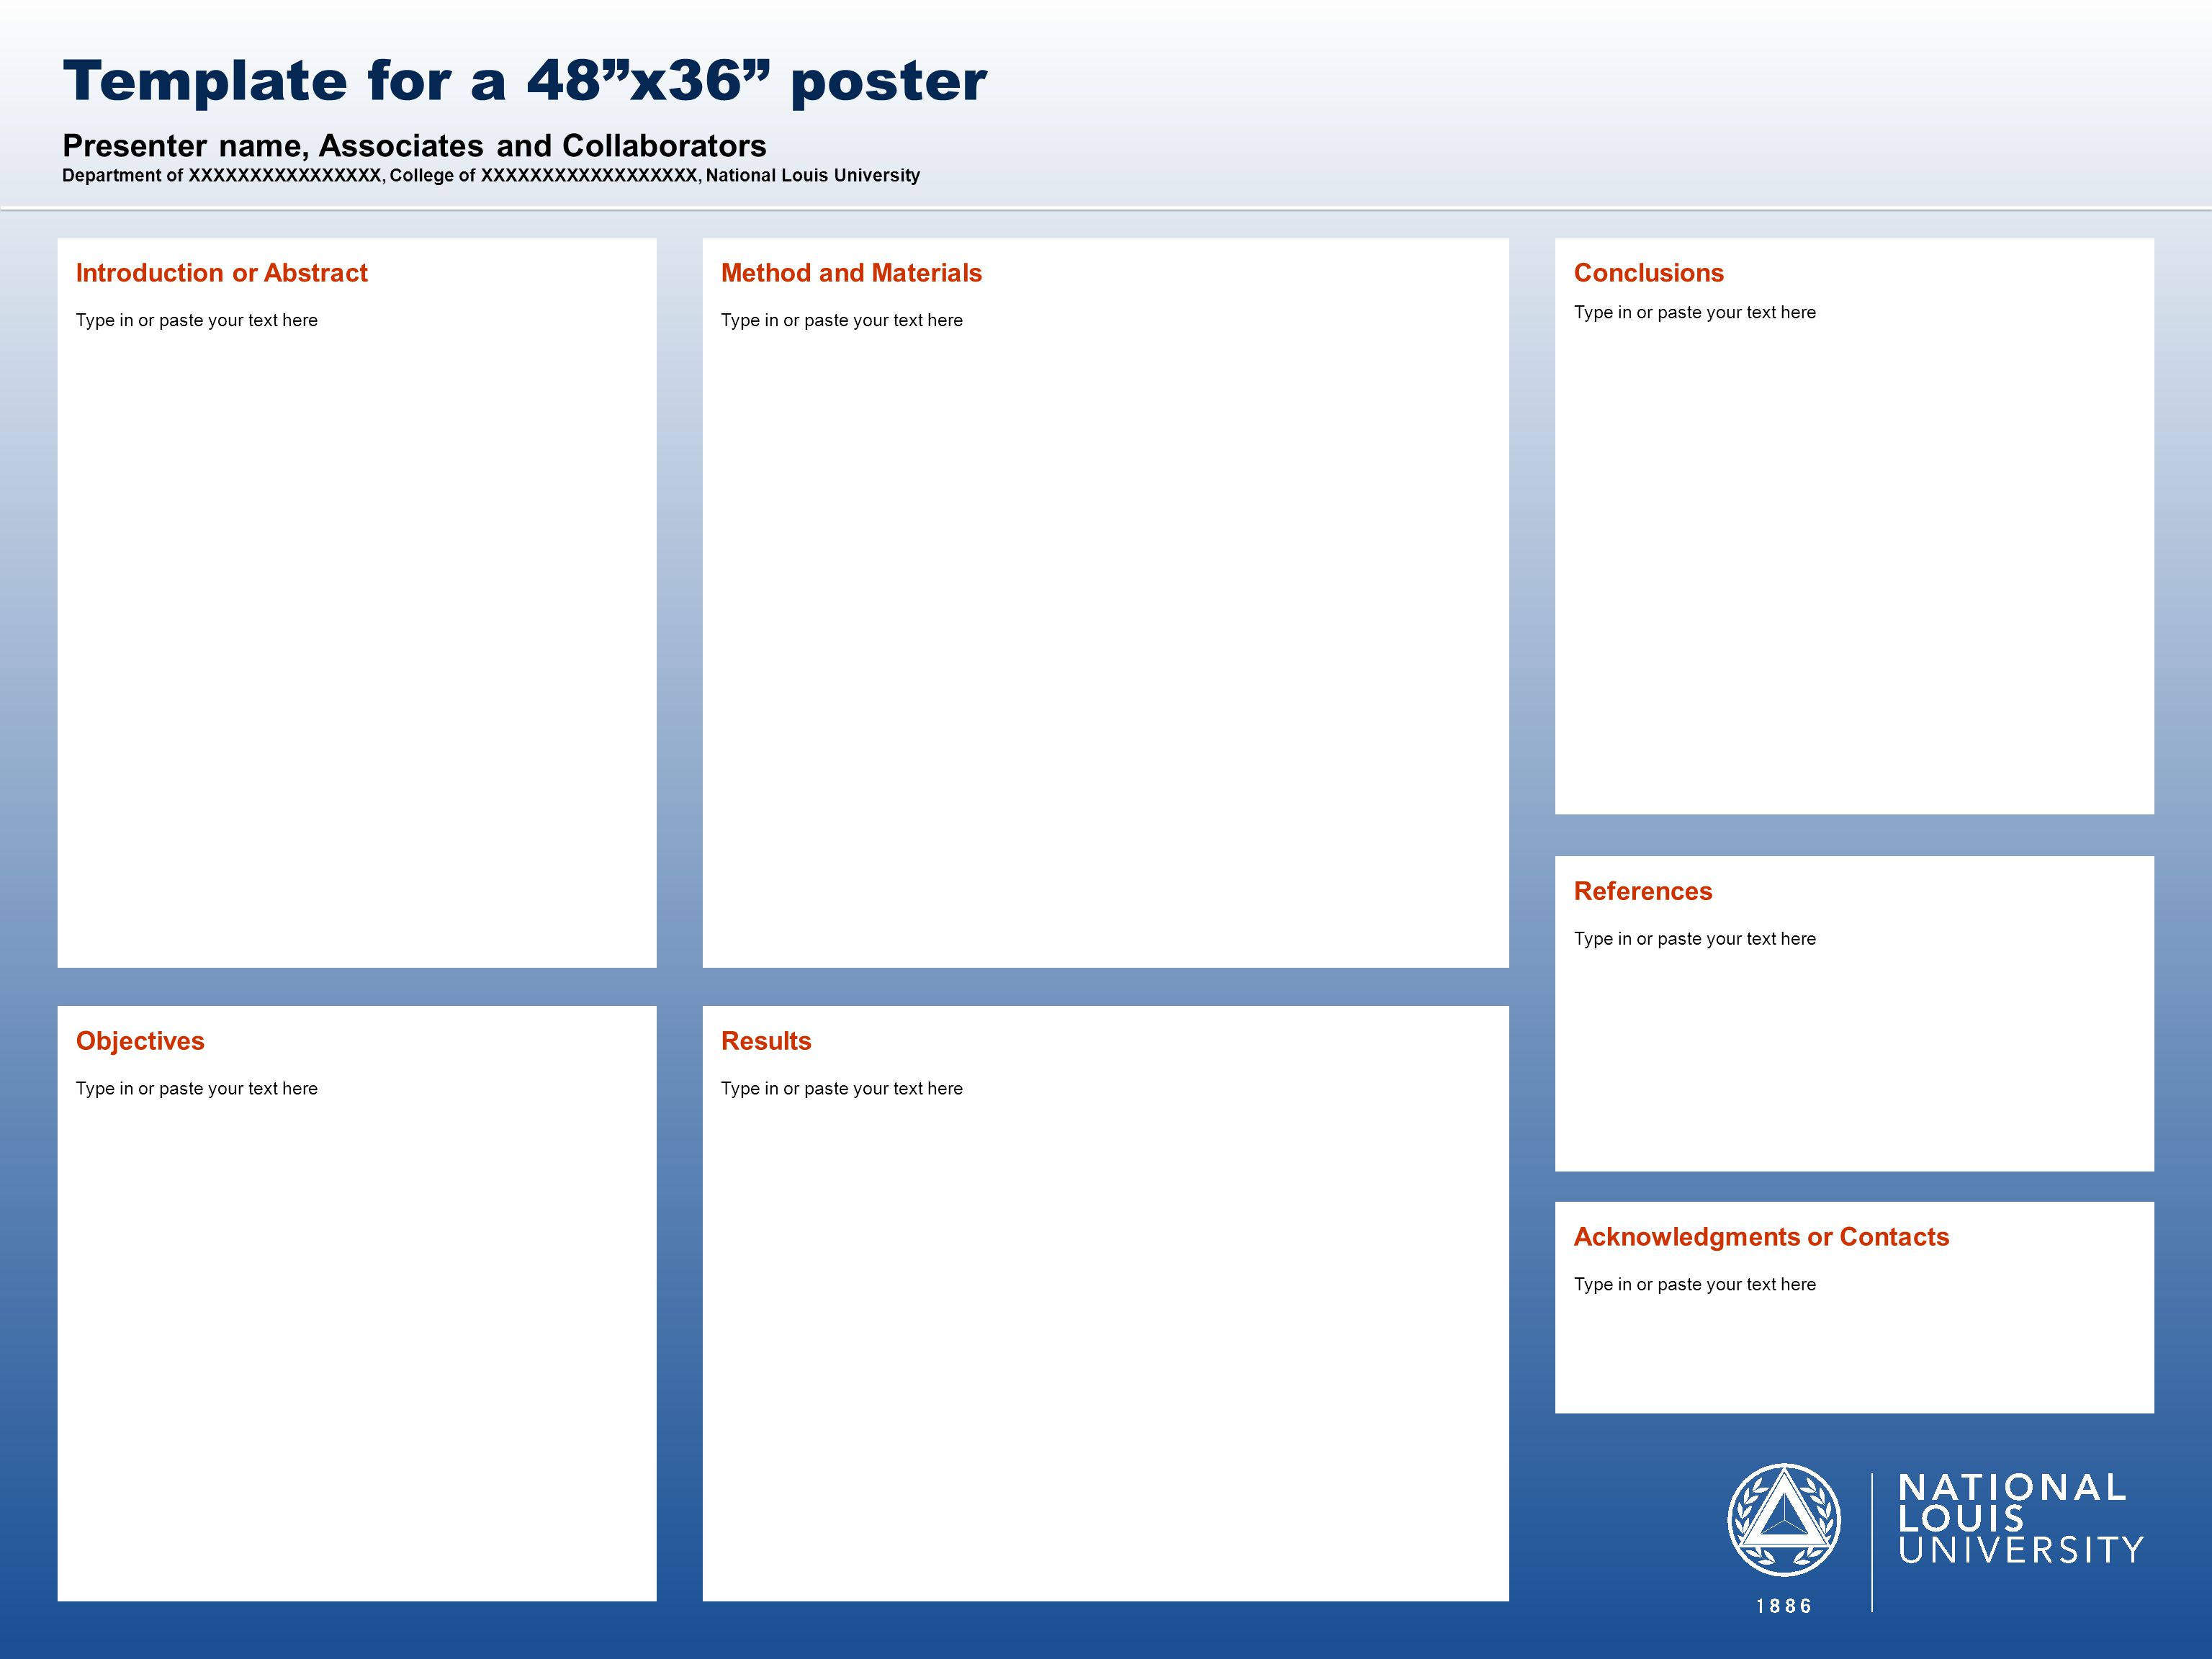 (THIS SIDEBAR DOES NOT PRINT) NLU DESIGN GUIDE This PowerPoint 2011 template produces a 48 x36 presentation poster.